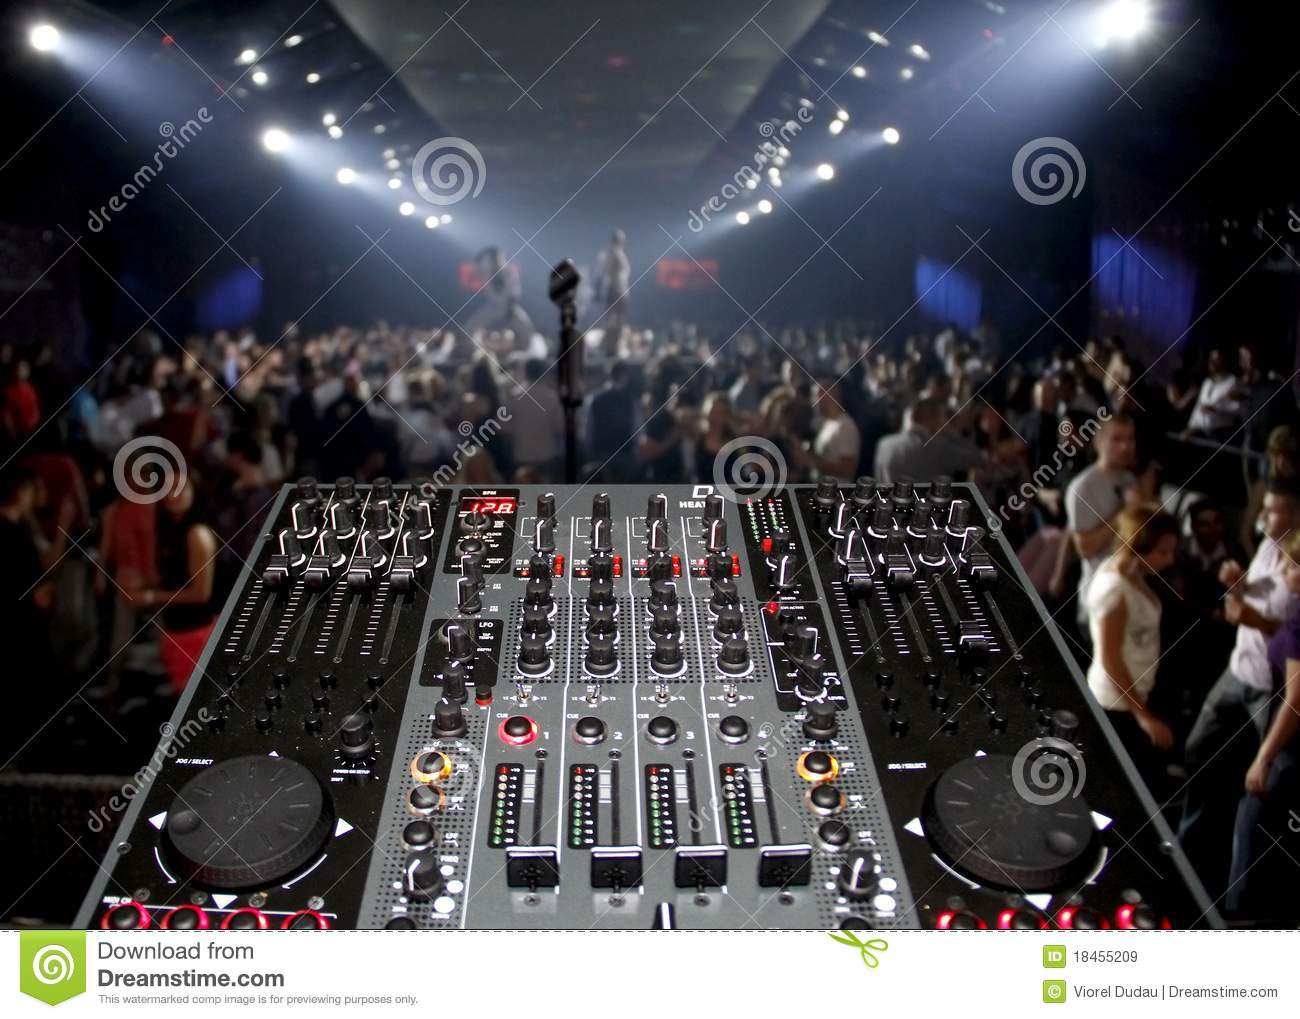 DJ desk in a nightclub party with lightshow